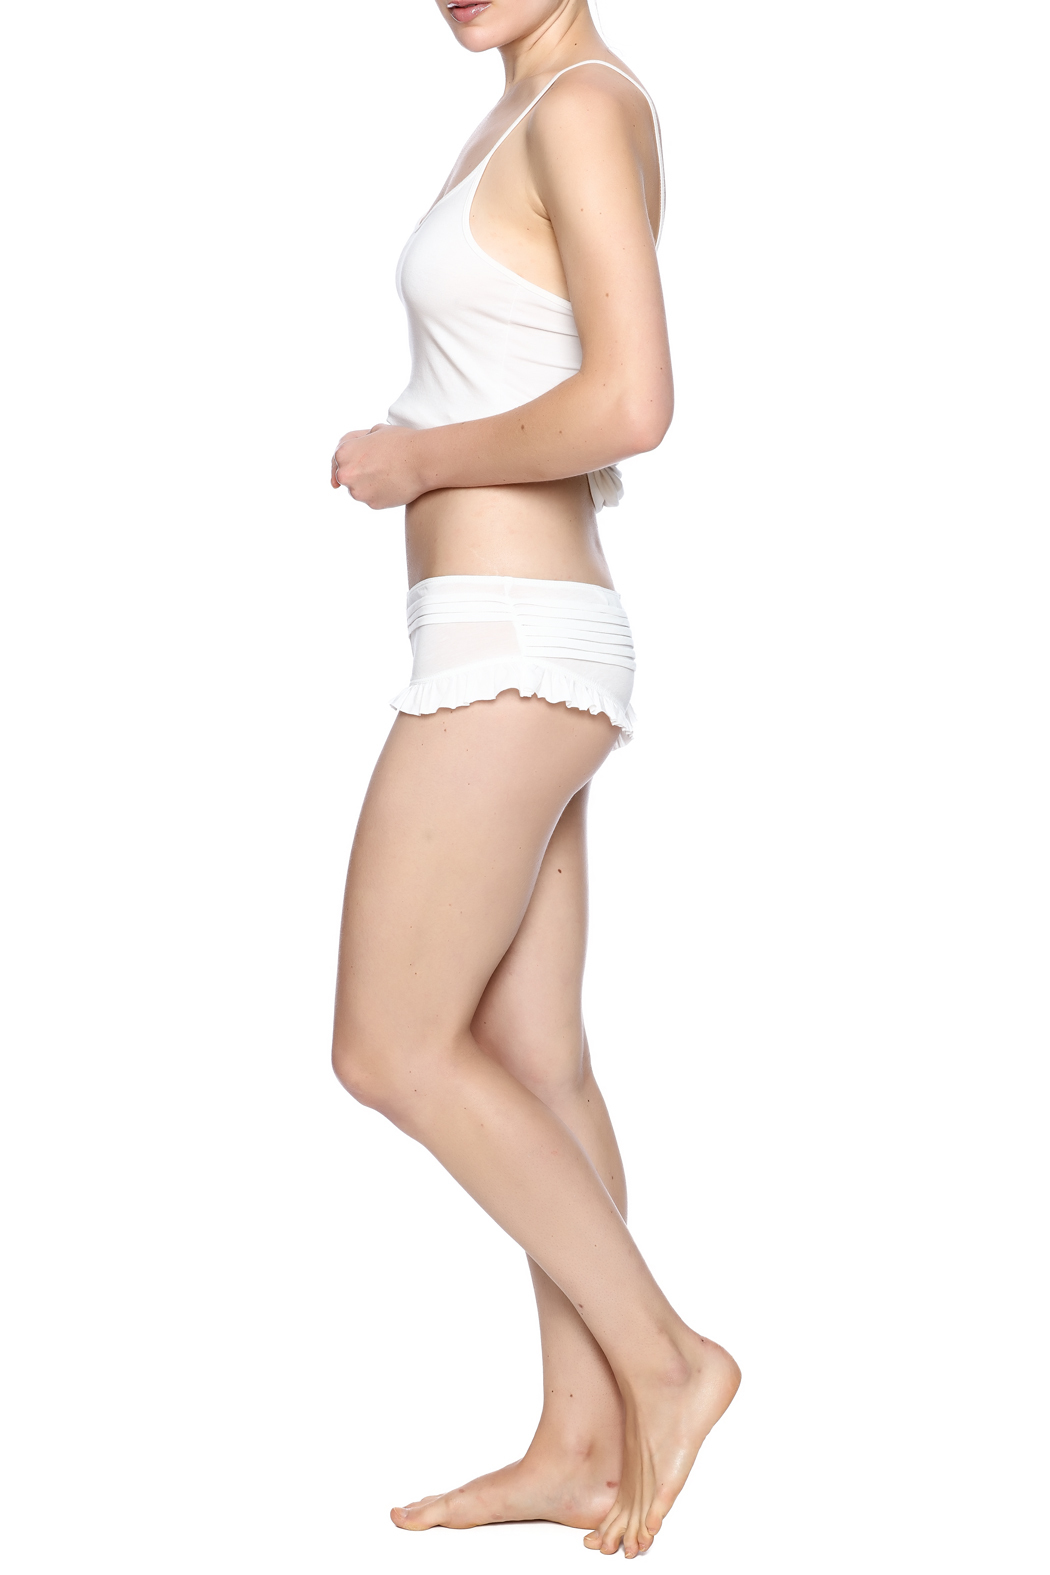 Skin World Wide Pleated Ruffle Panty From Idaho By